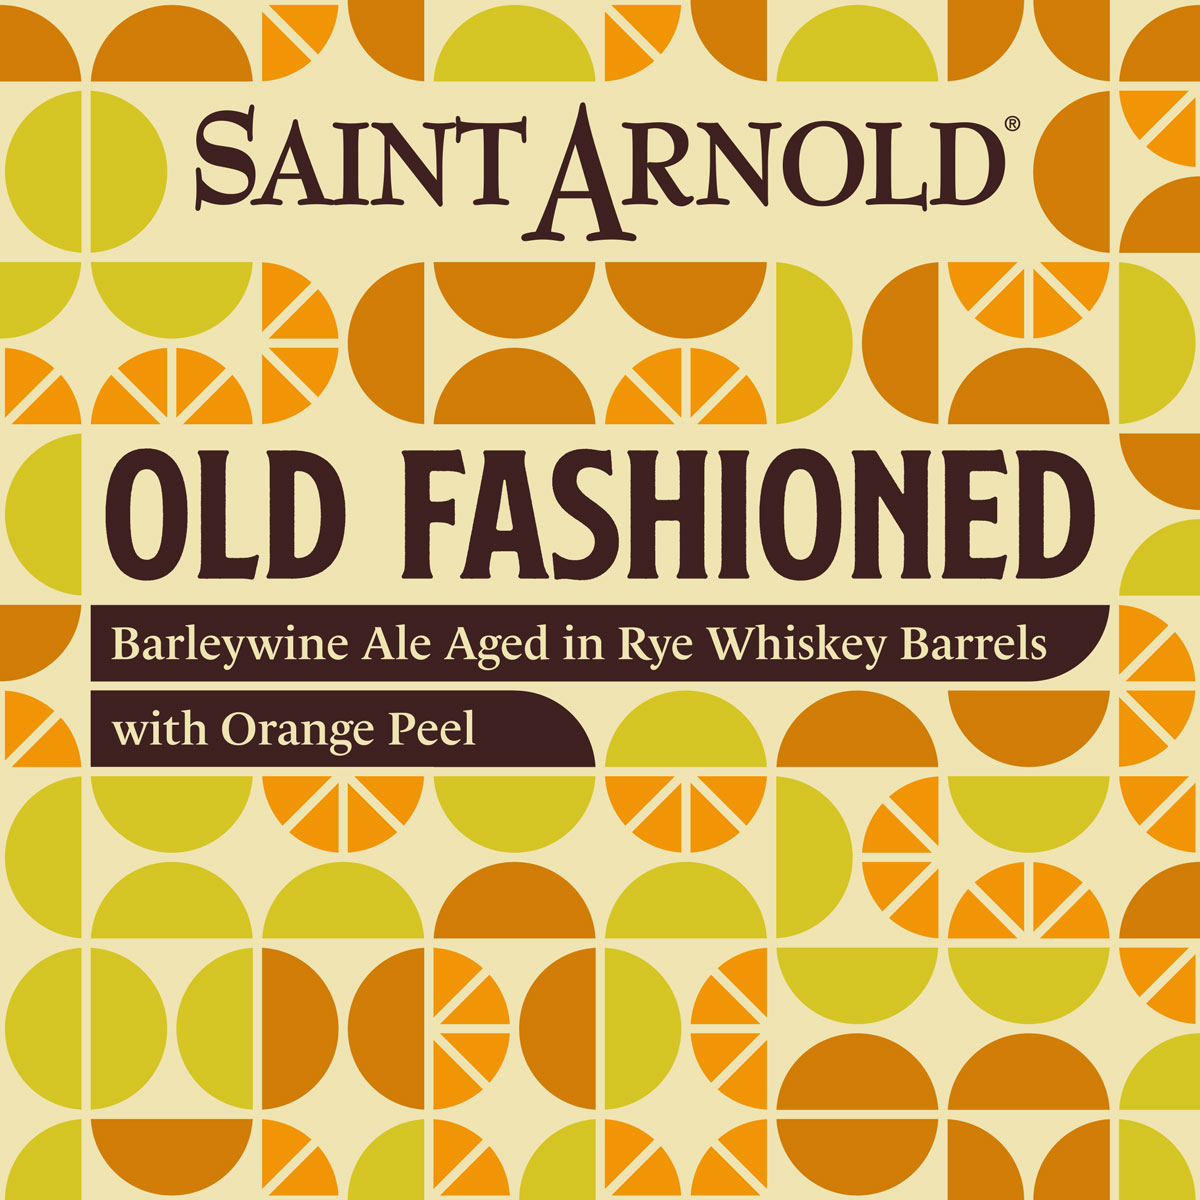 brand_image_old_fashioned